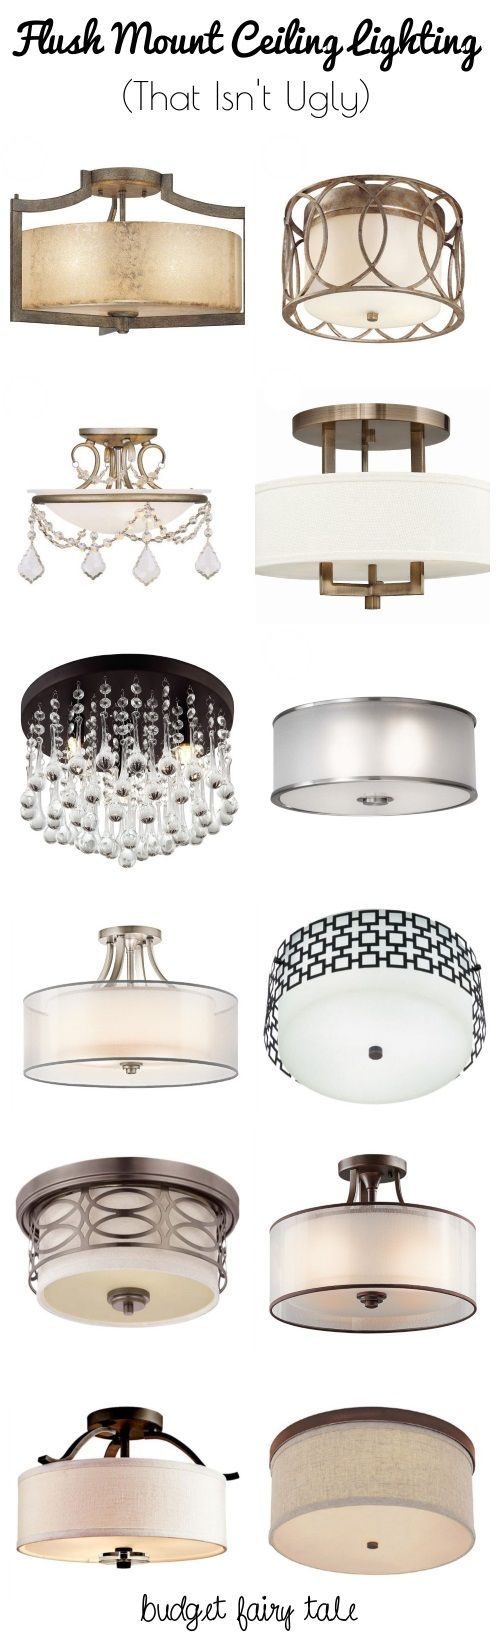 12 Best Bathroom Ceiling Light Fixtures Images On Pinterest Bedroom Lighting Ceiling Fixtures